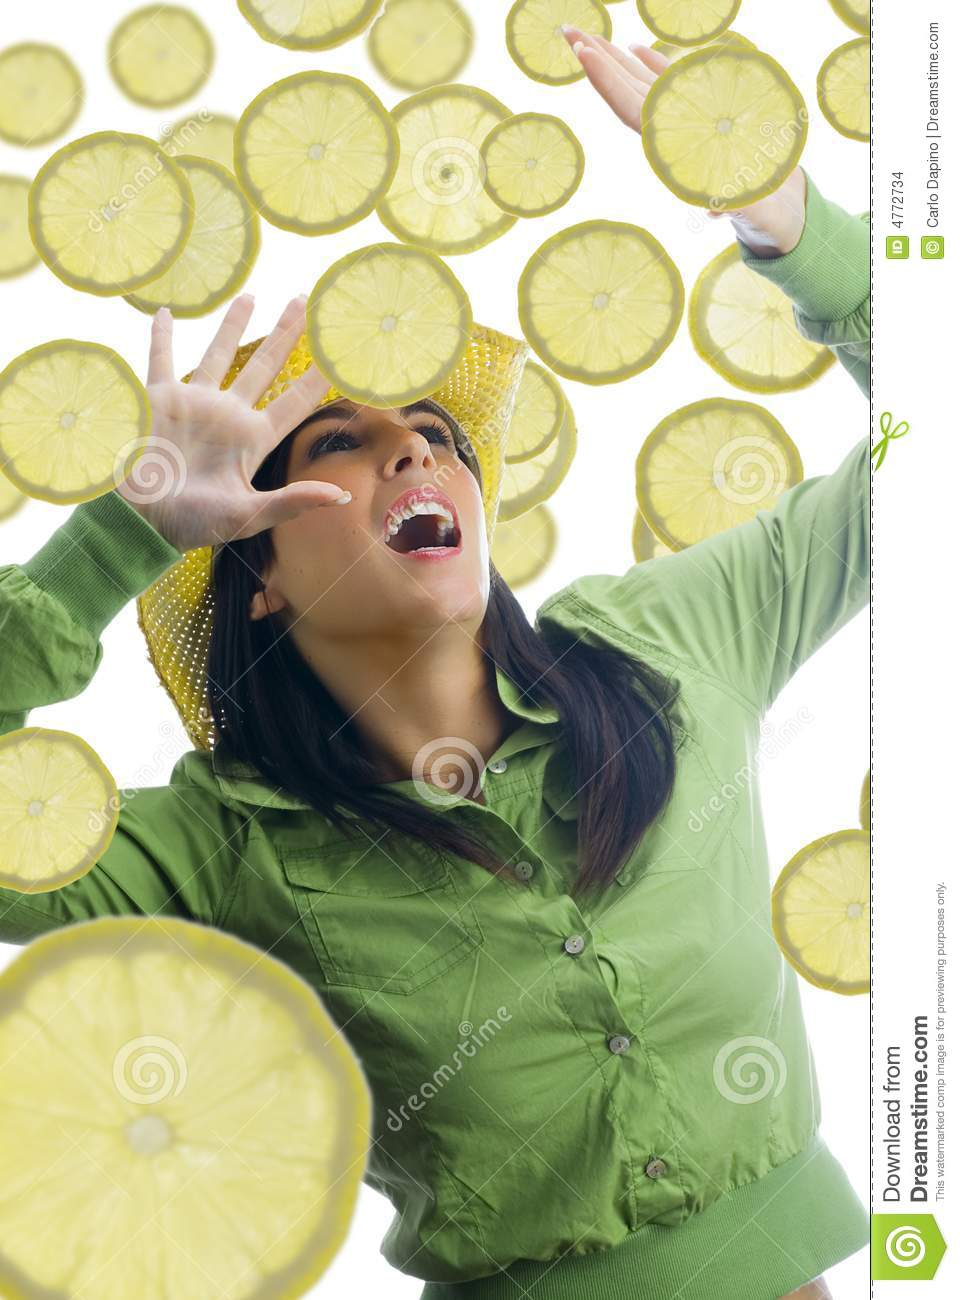 Stop with lemon